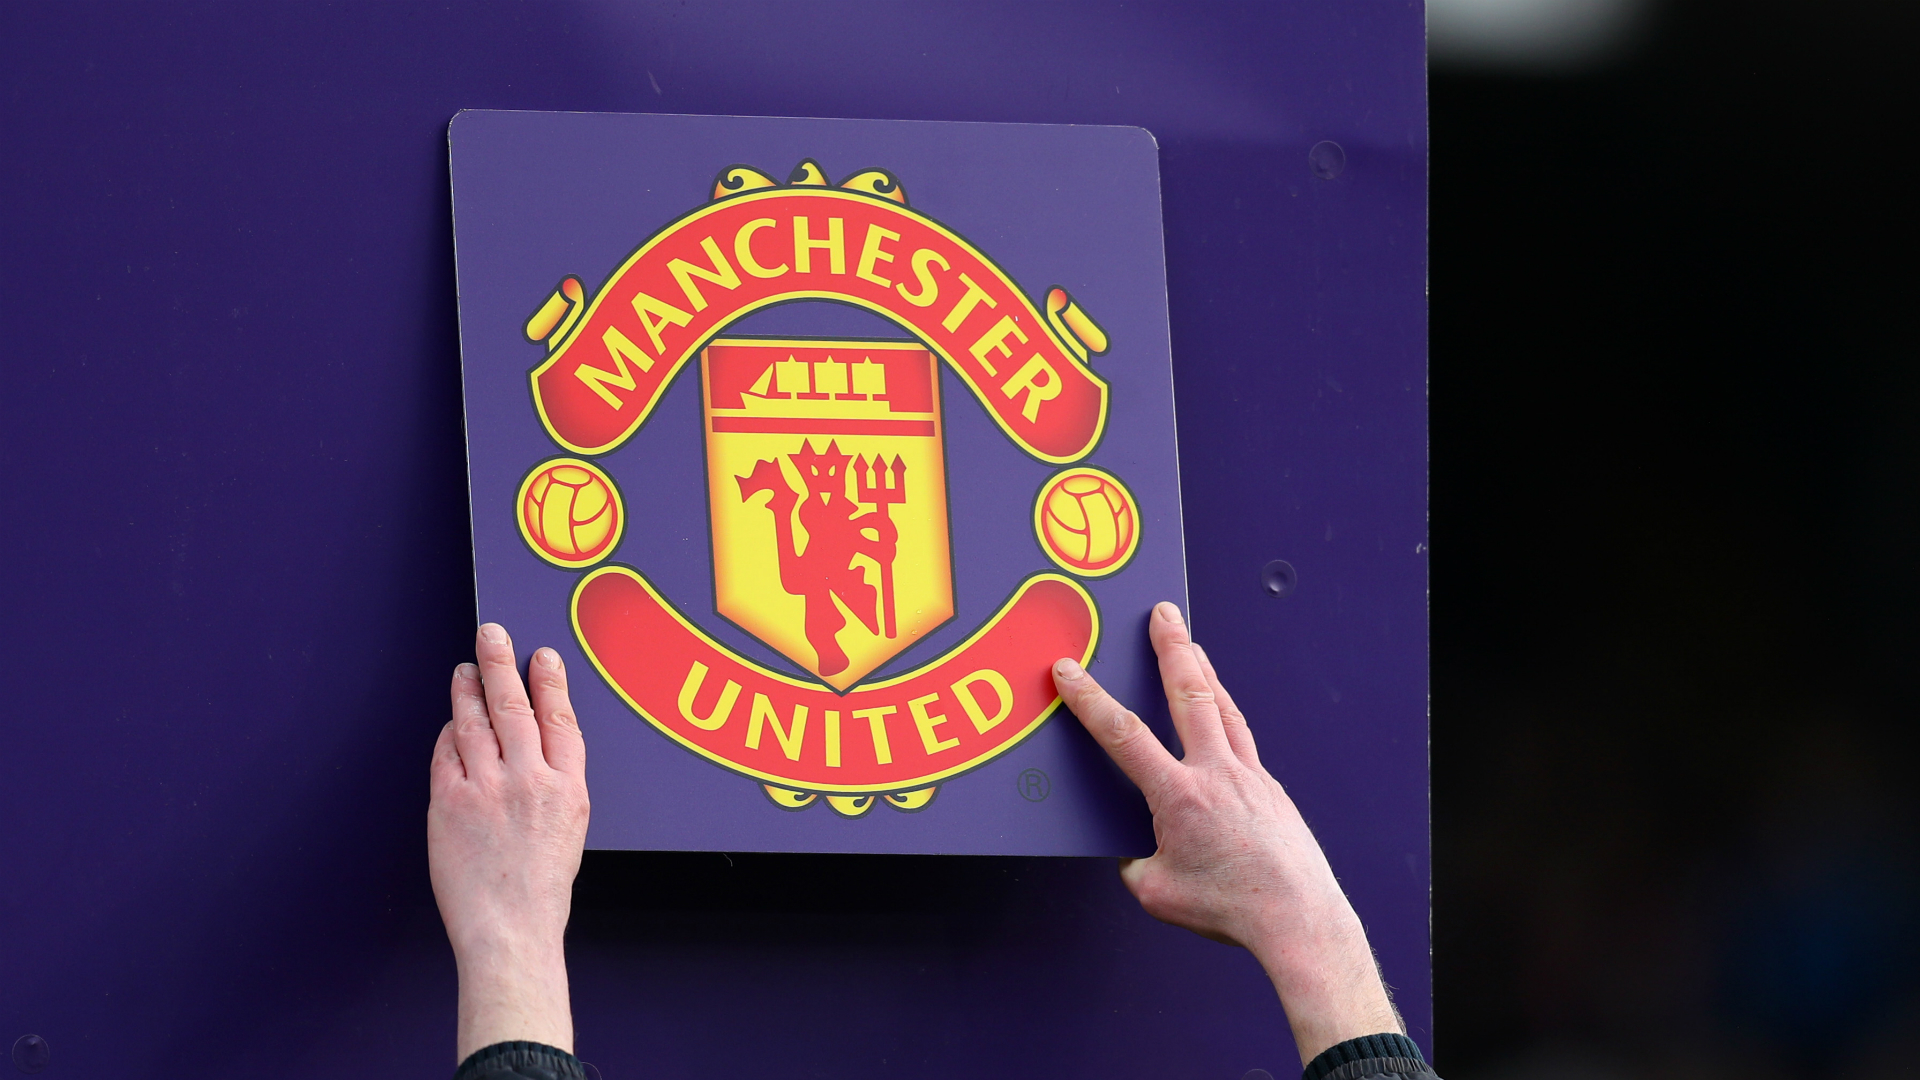 Manchester United Donates Medical Equipments to National Health Service Amid Coronavirus Pandemic